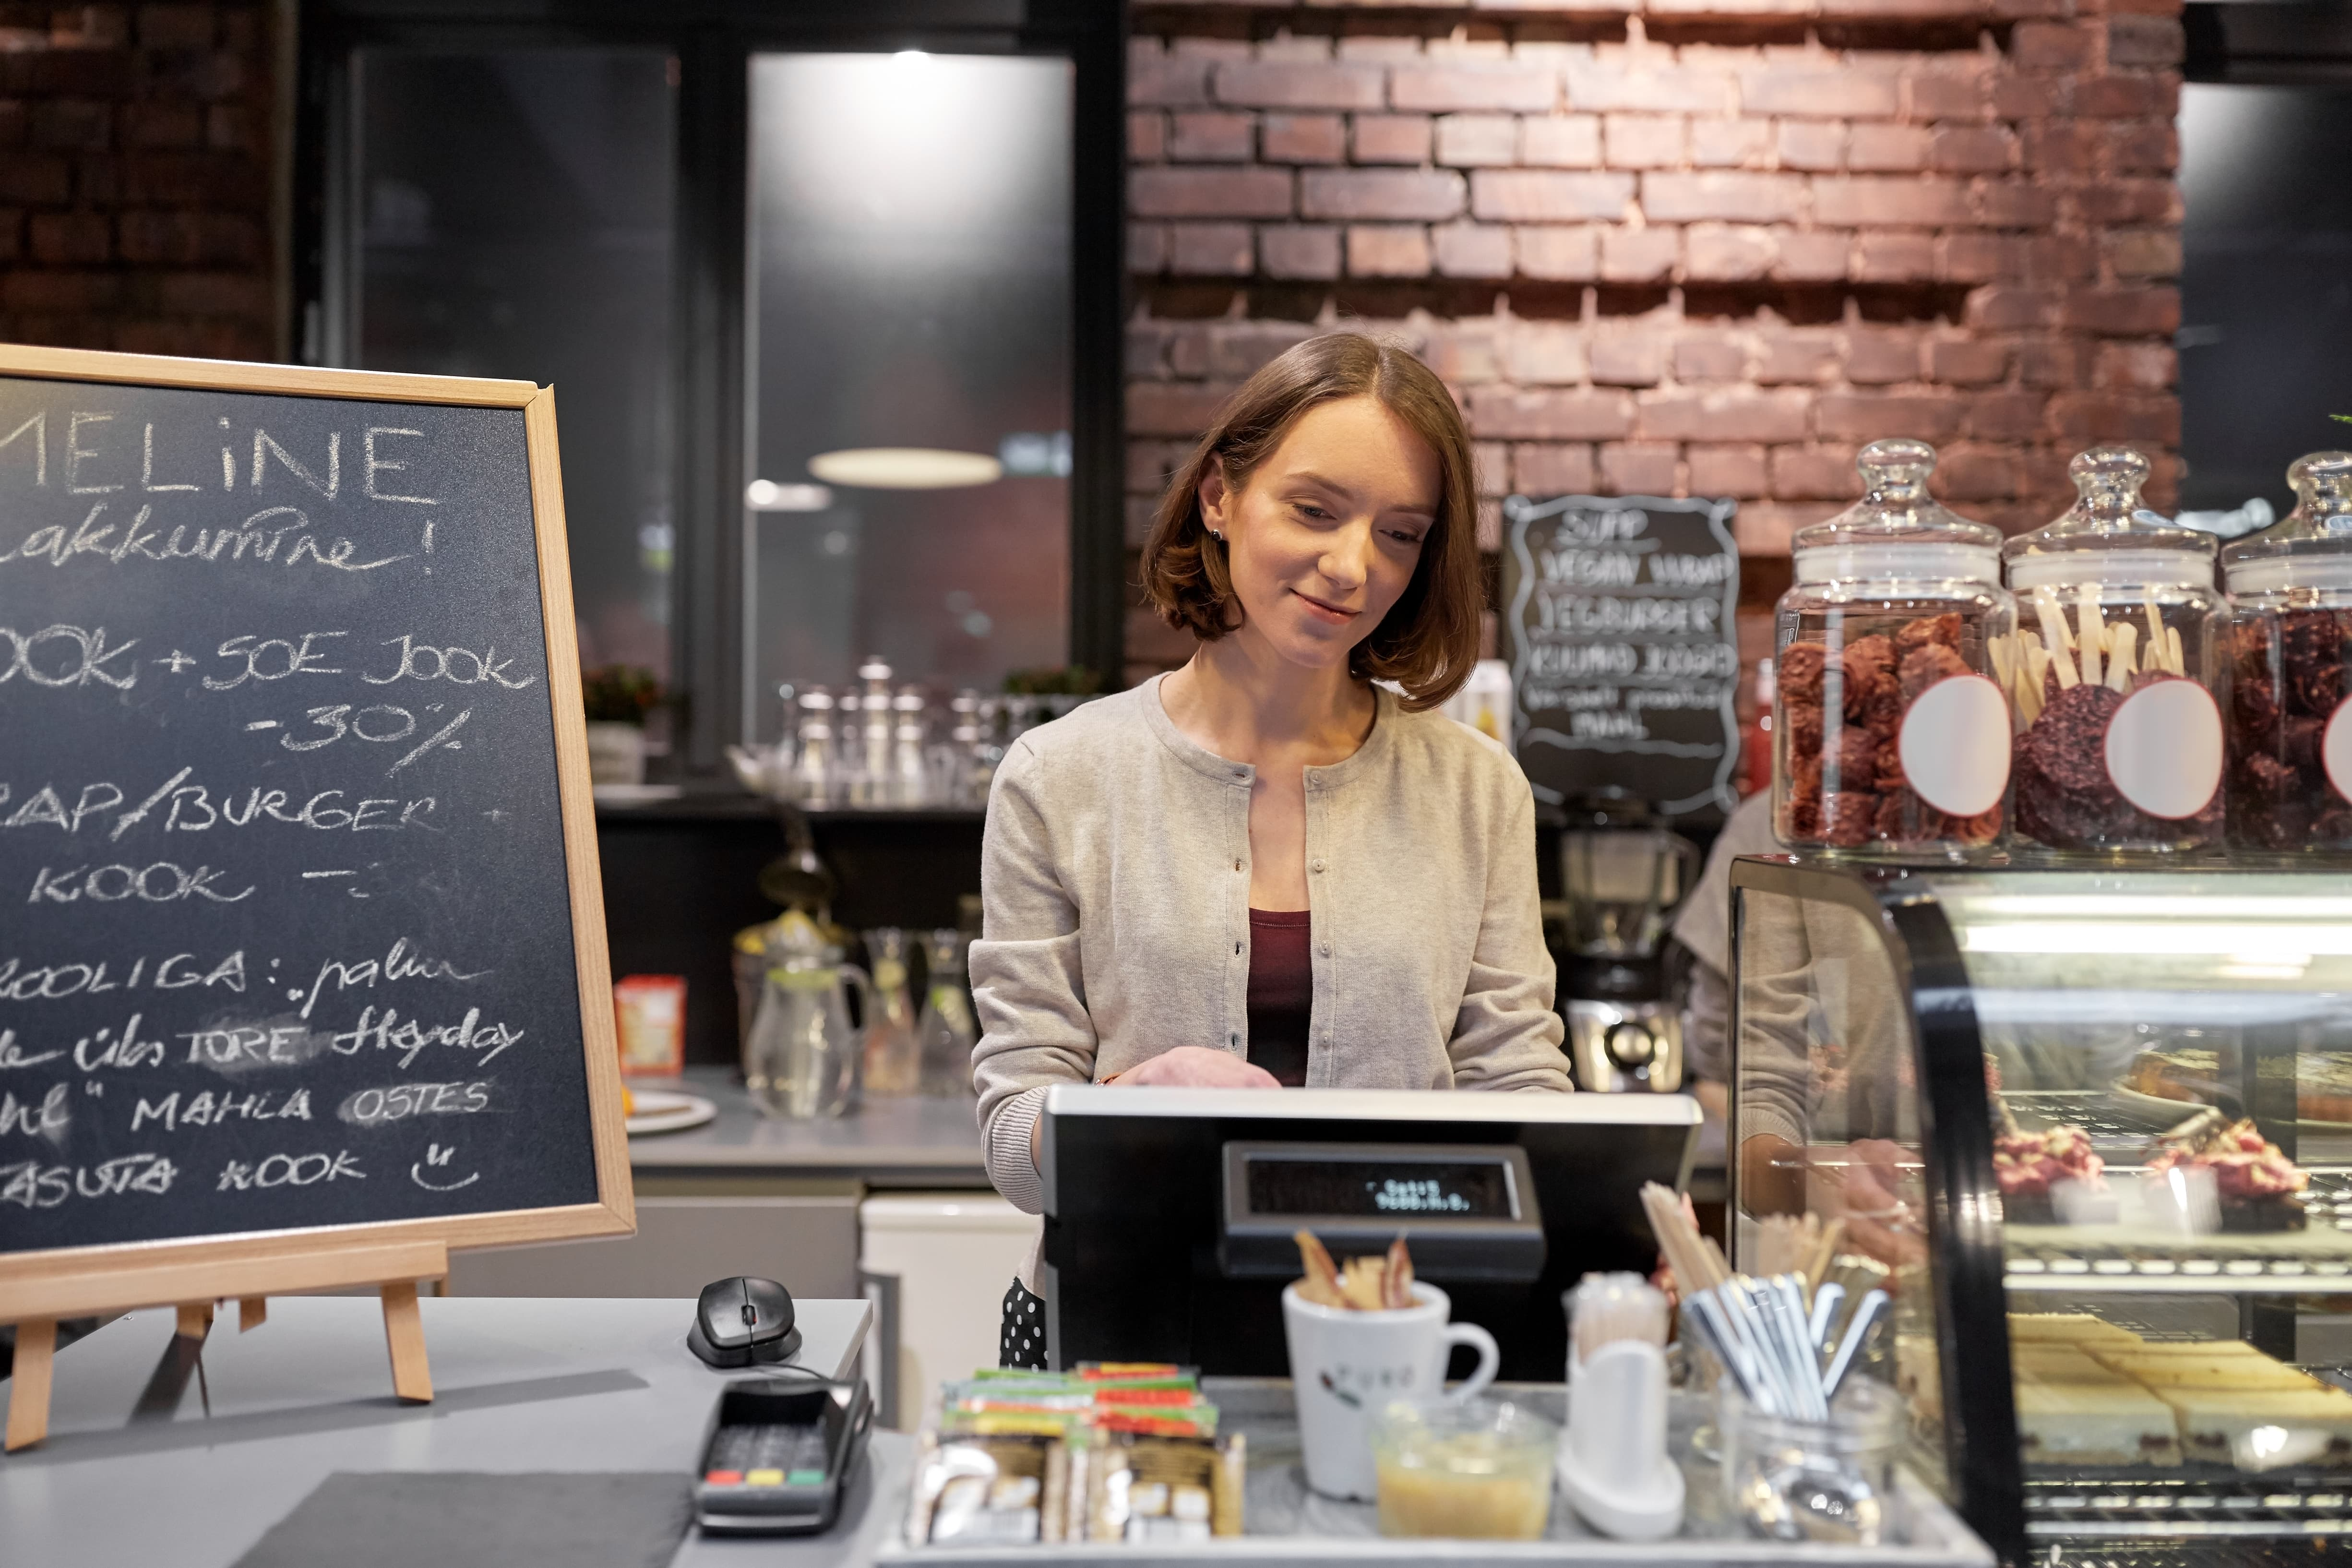 RPOWER POS | 5 Ways your Counter Service Restaurant Can Benefit from a Customer Facing Display